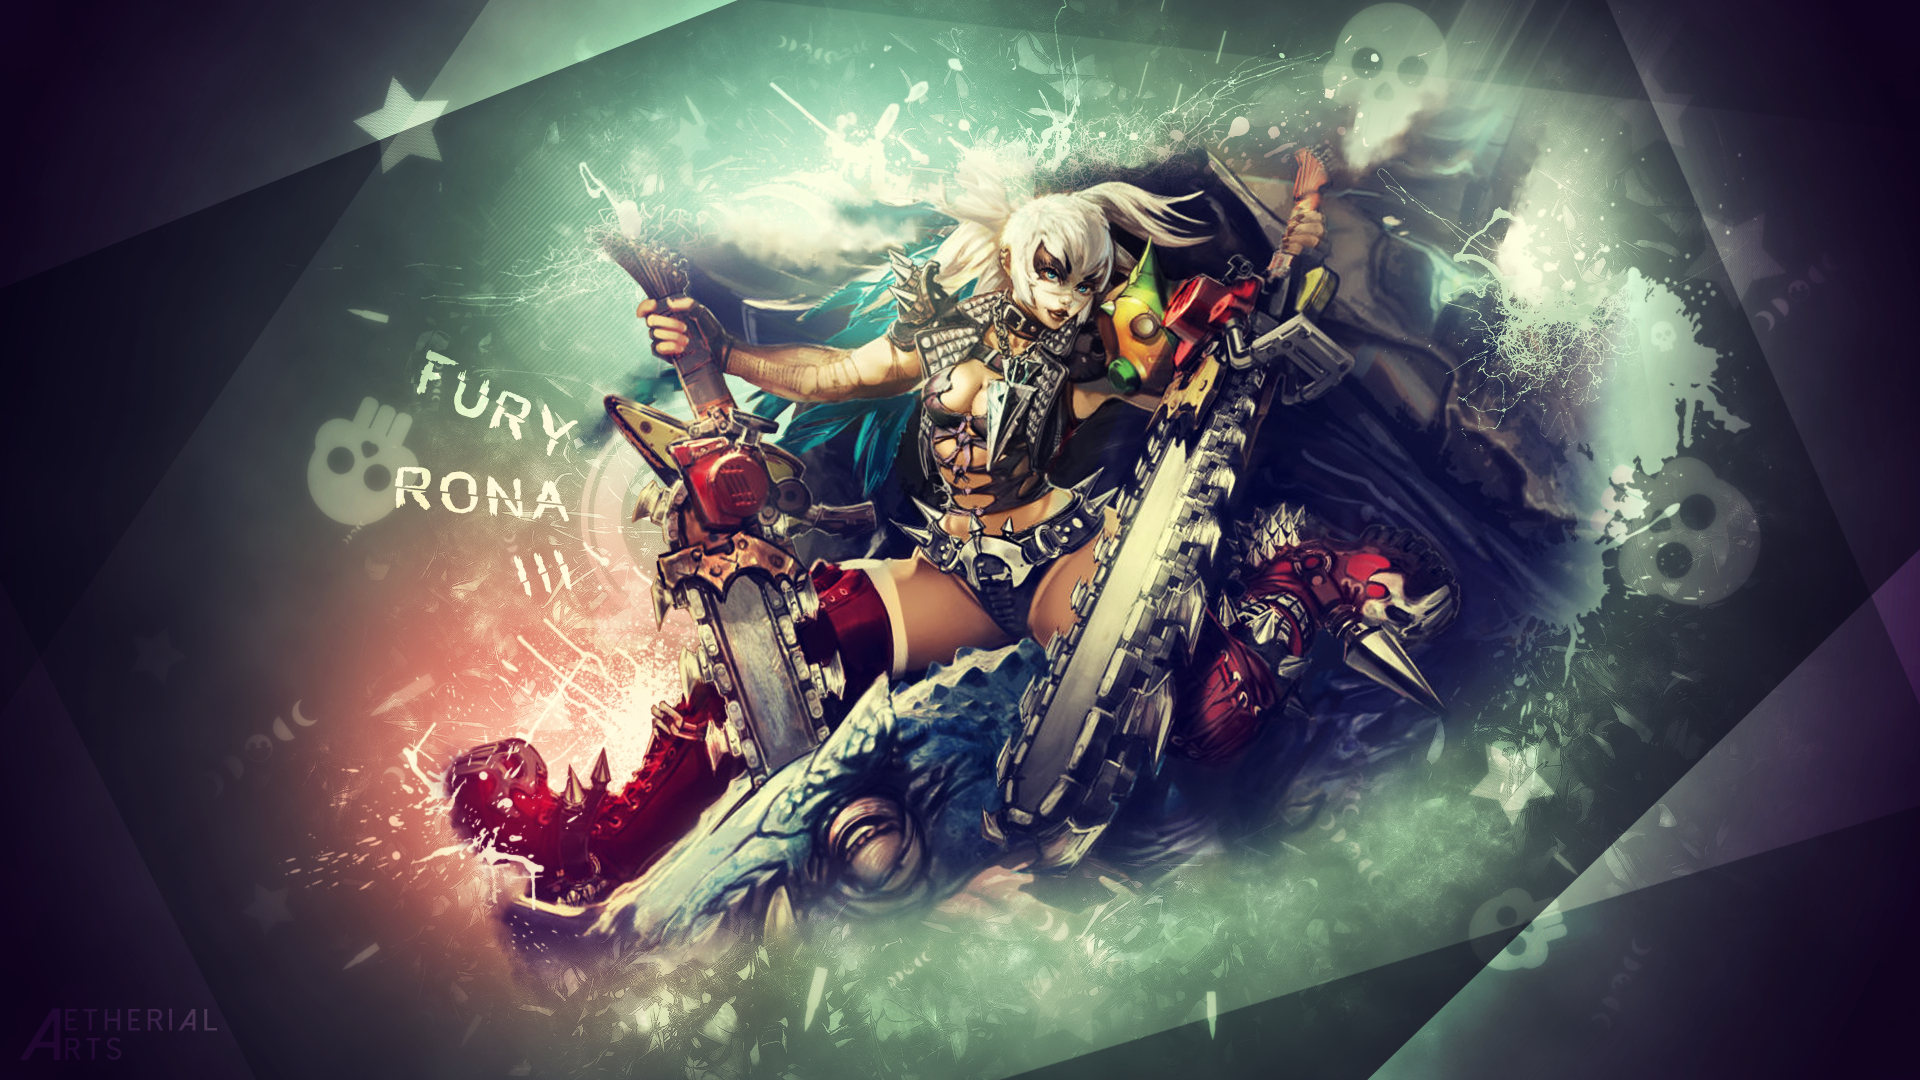 Hd wallpaper vainglory -  Img